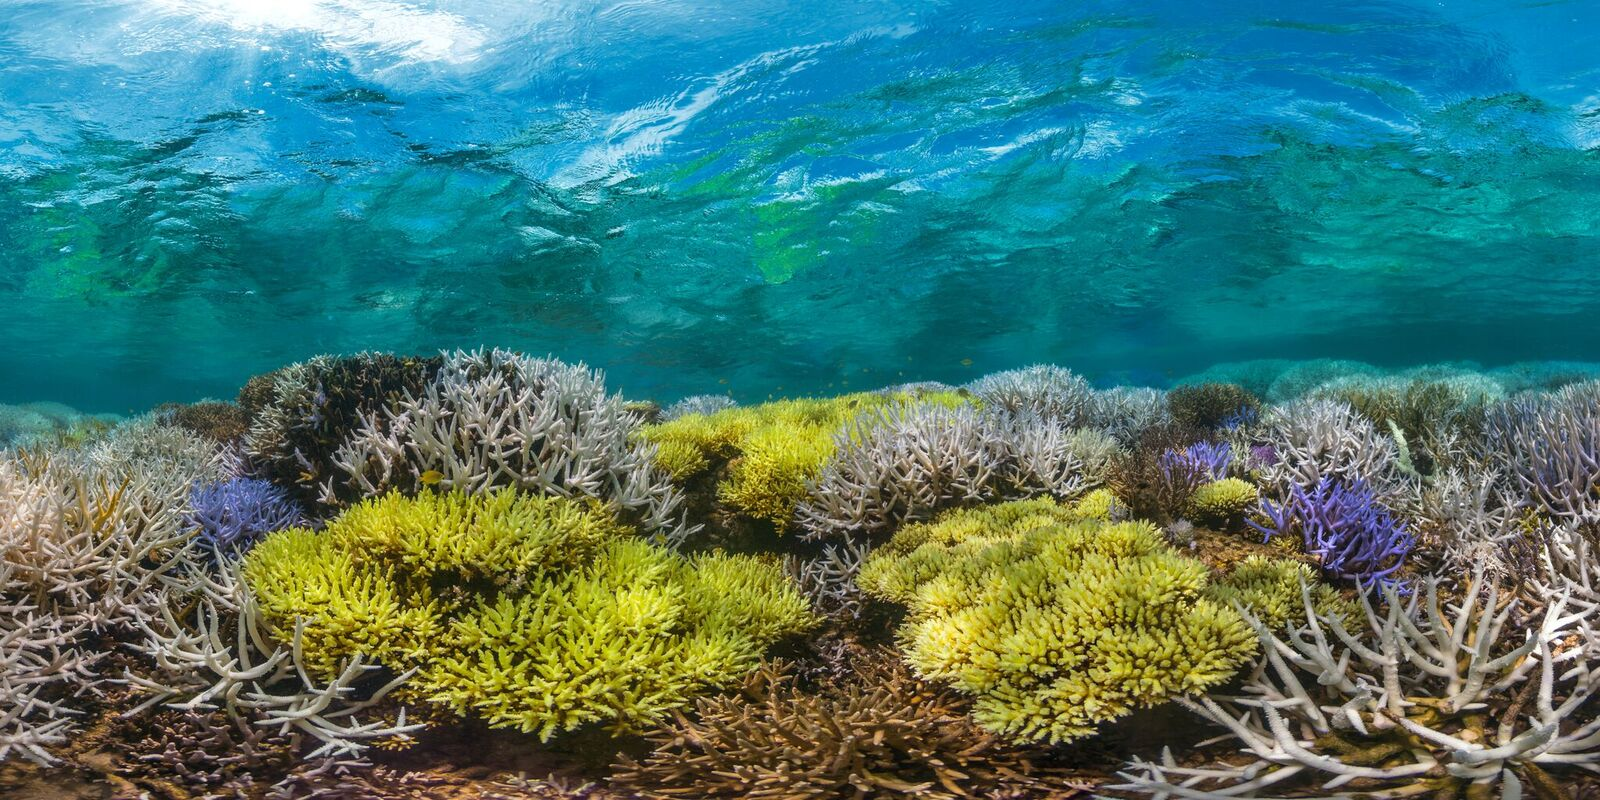 New Cal Panorama 04 - March 2016 - The Ocean Agency - XL Catlin Seaview Survey - Richard Vevers_preview.jpeg